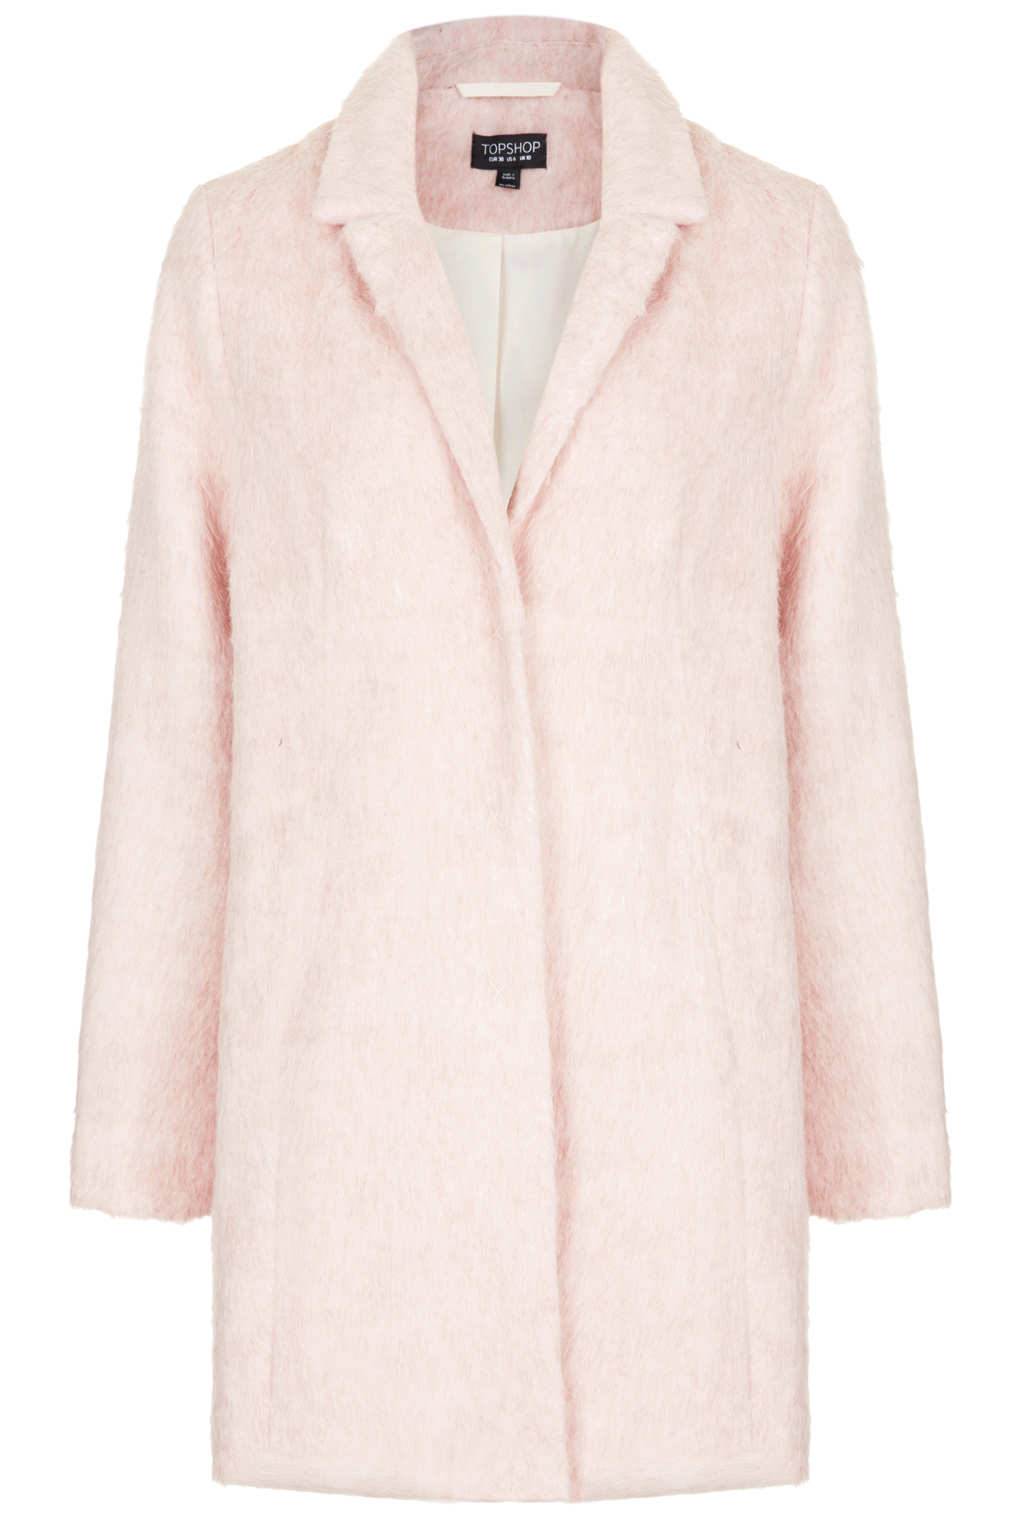 Topshop fluffy boyfriend coat, £89